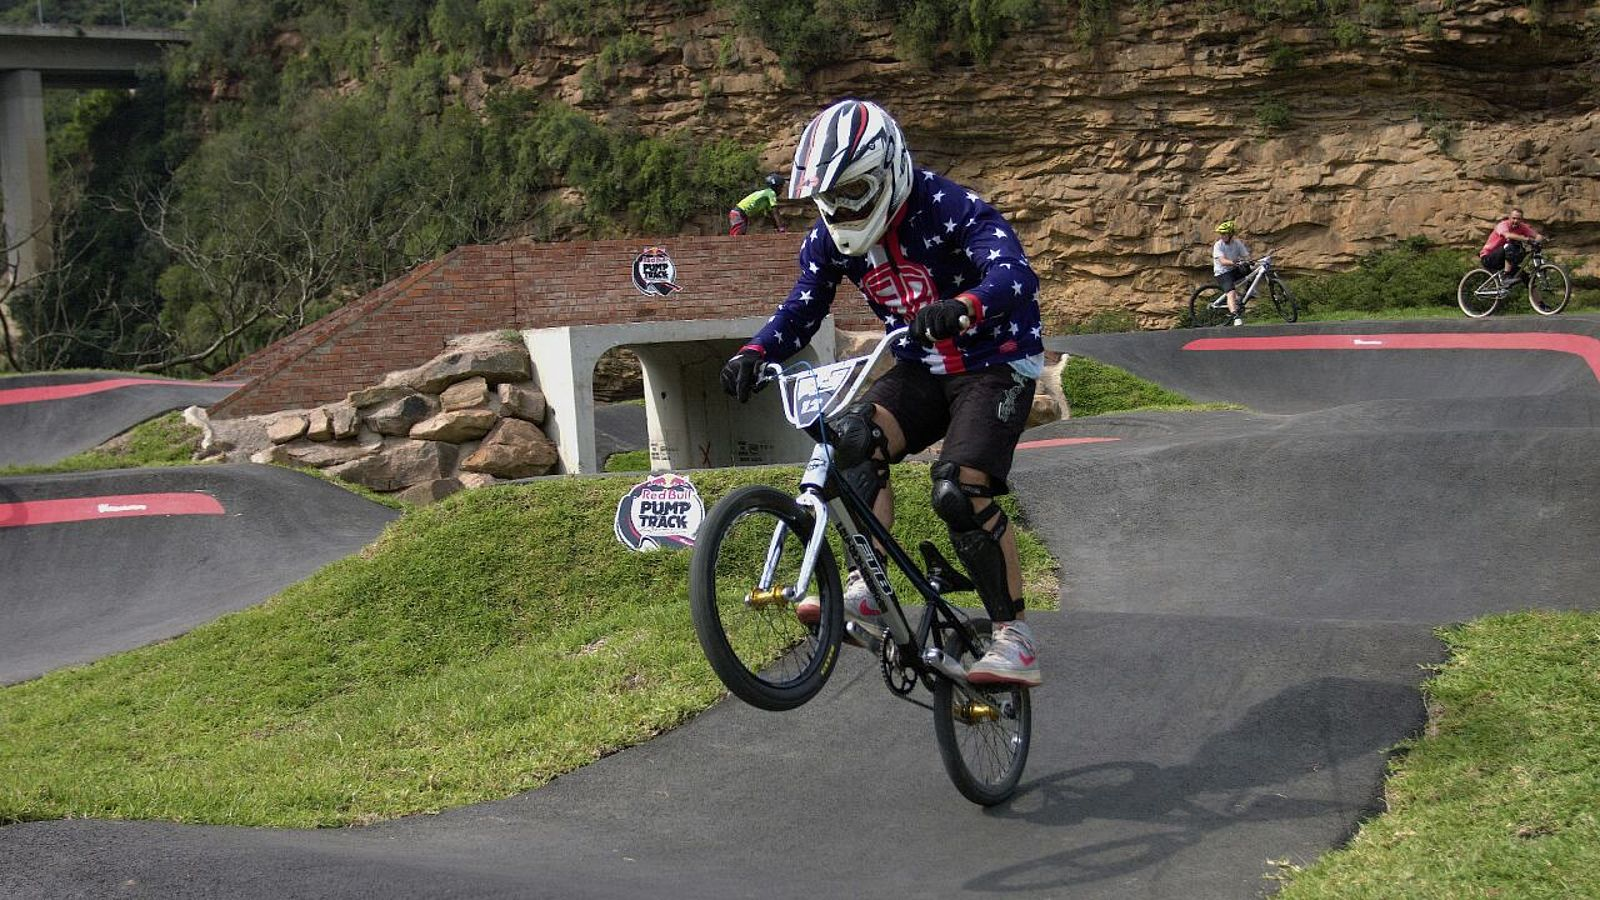 Red Bull Pump Track Durban Qualifier